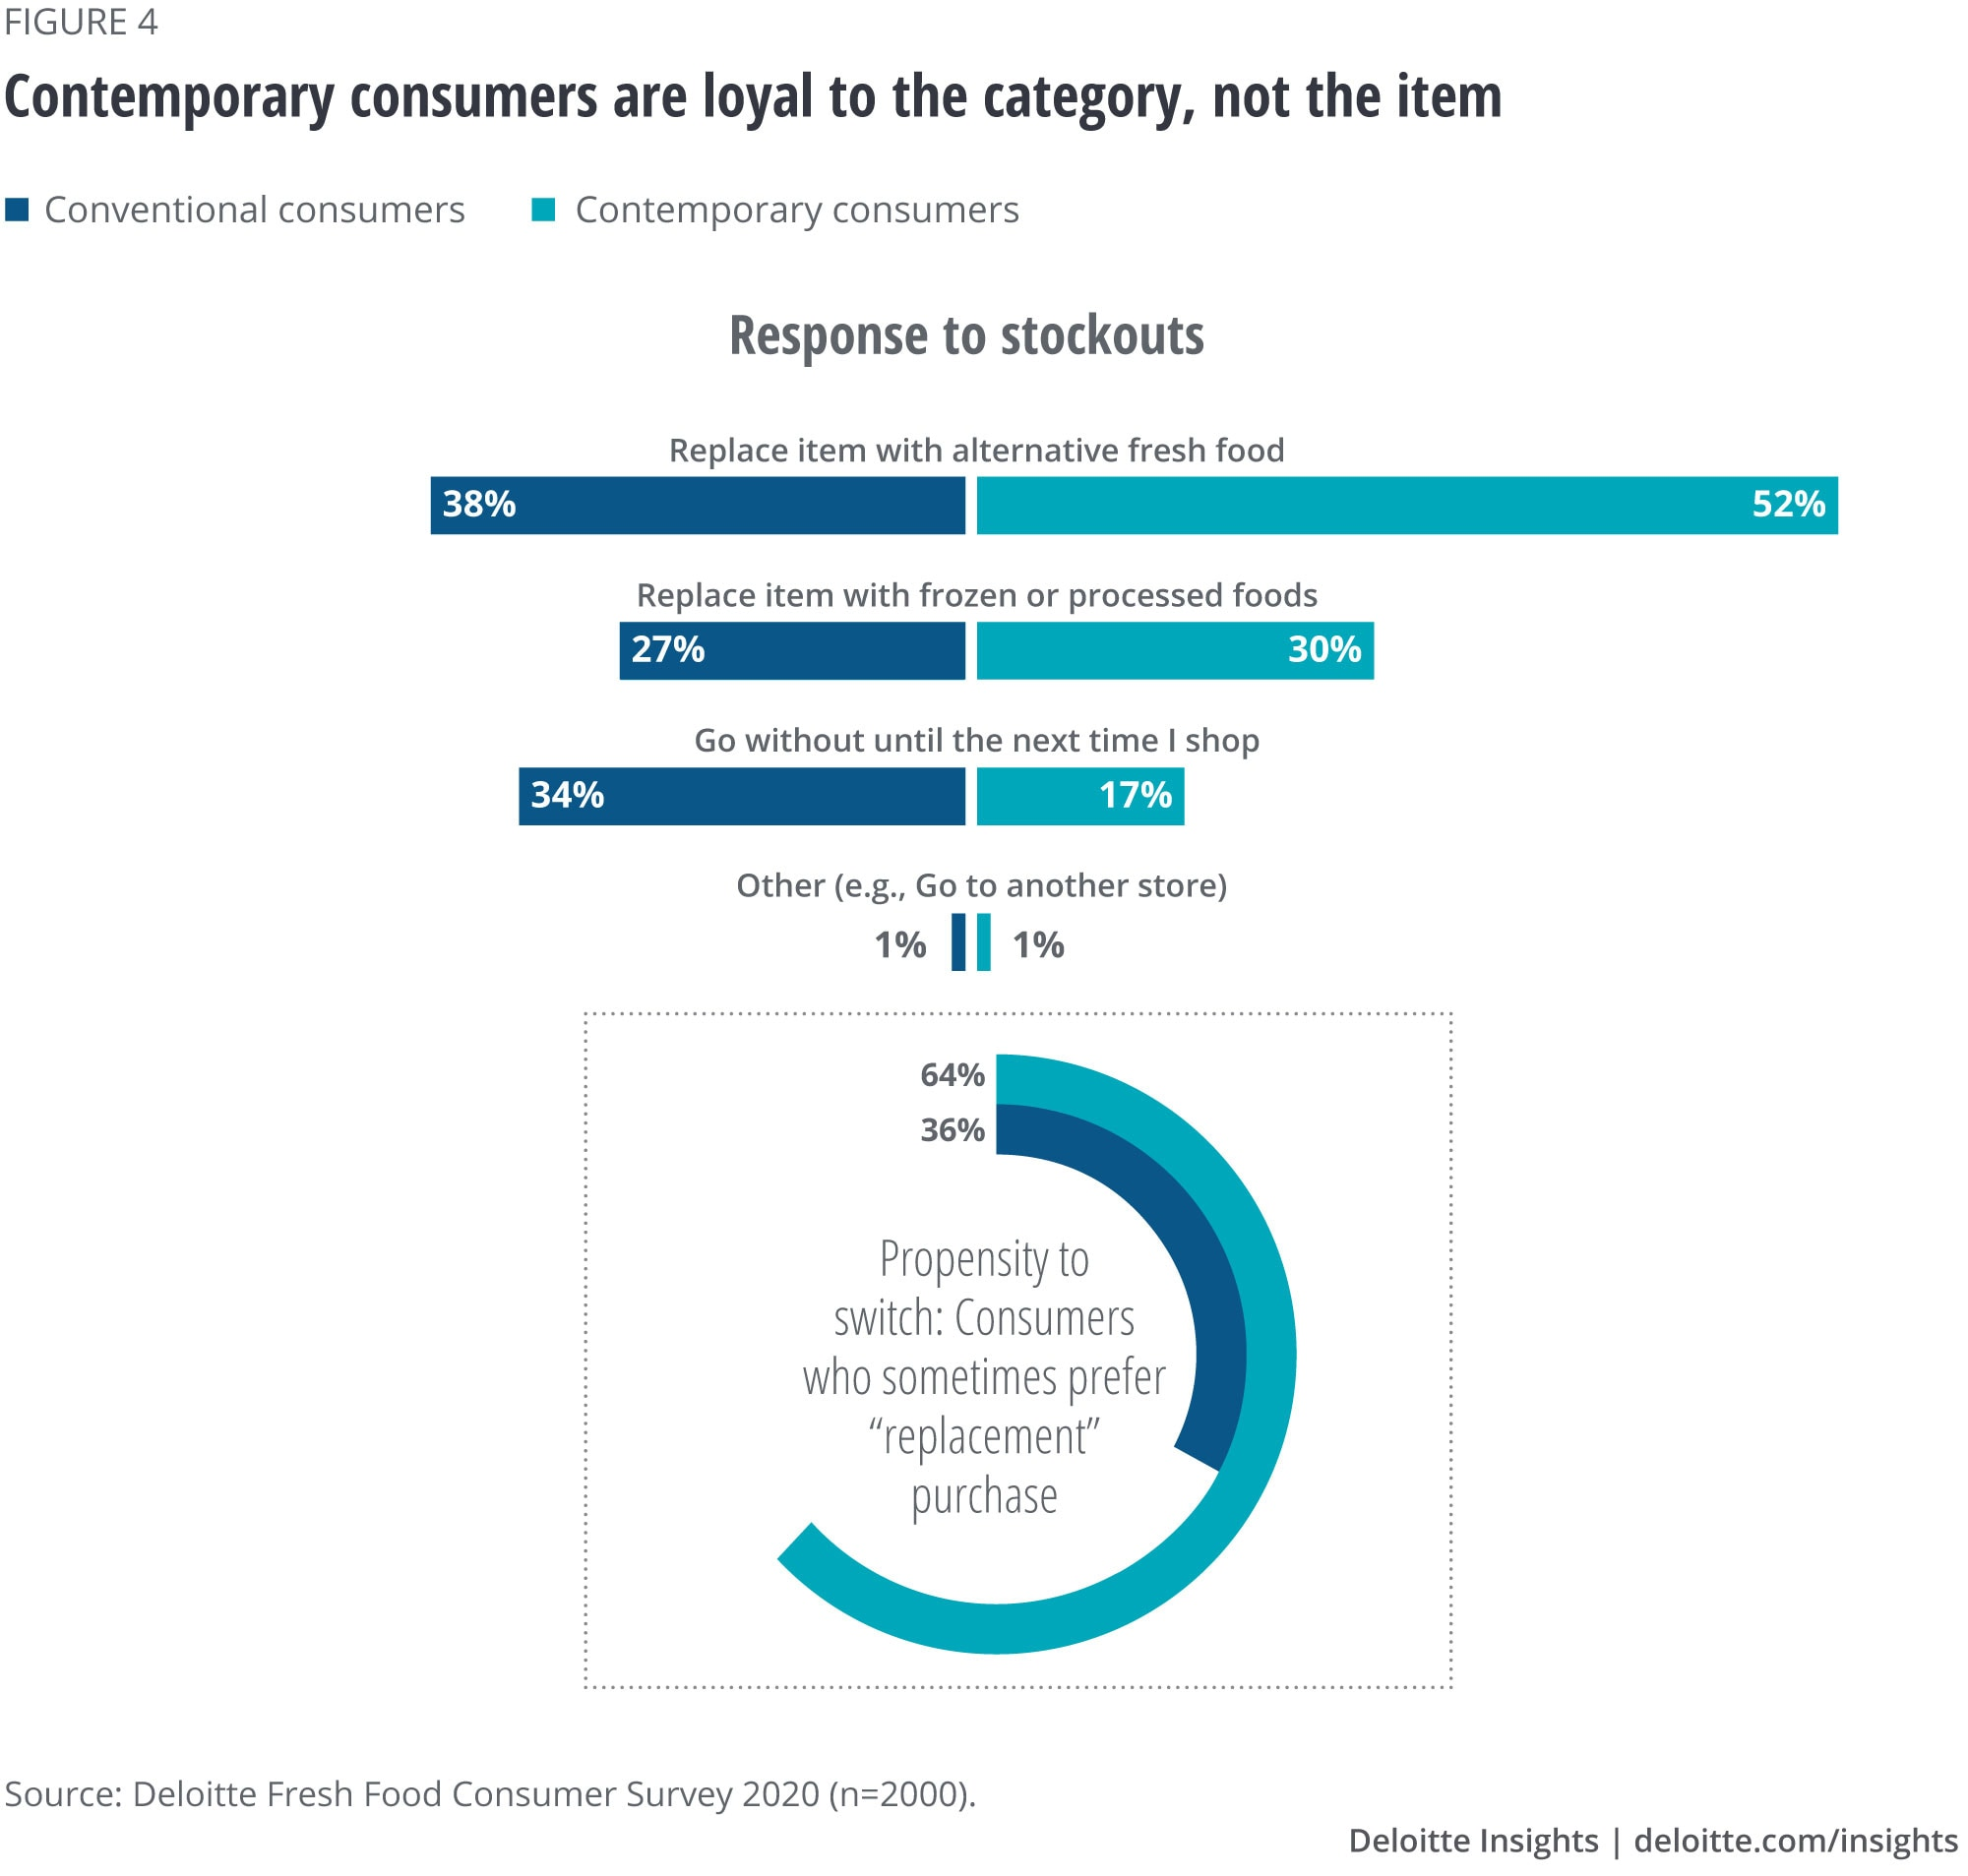 Contemporary consumers are not loyal in a conventional sense